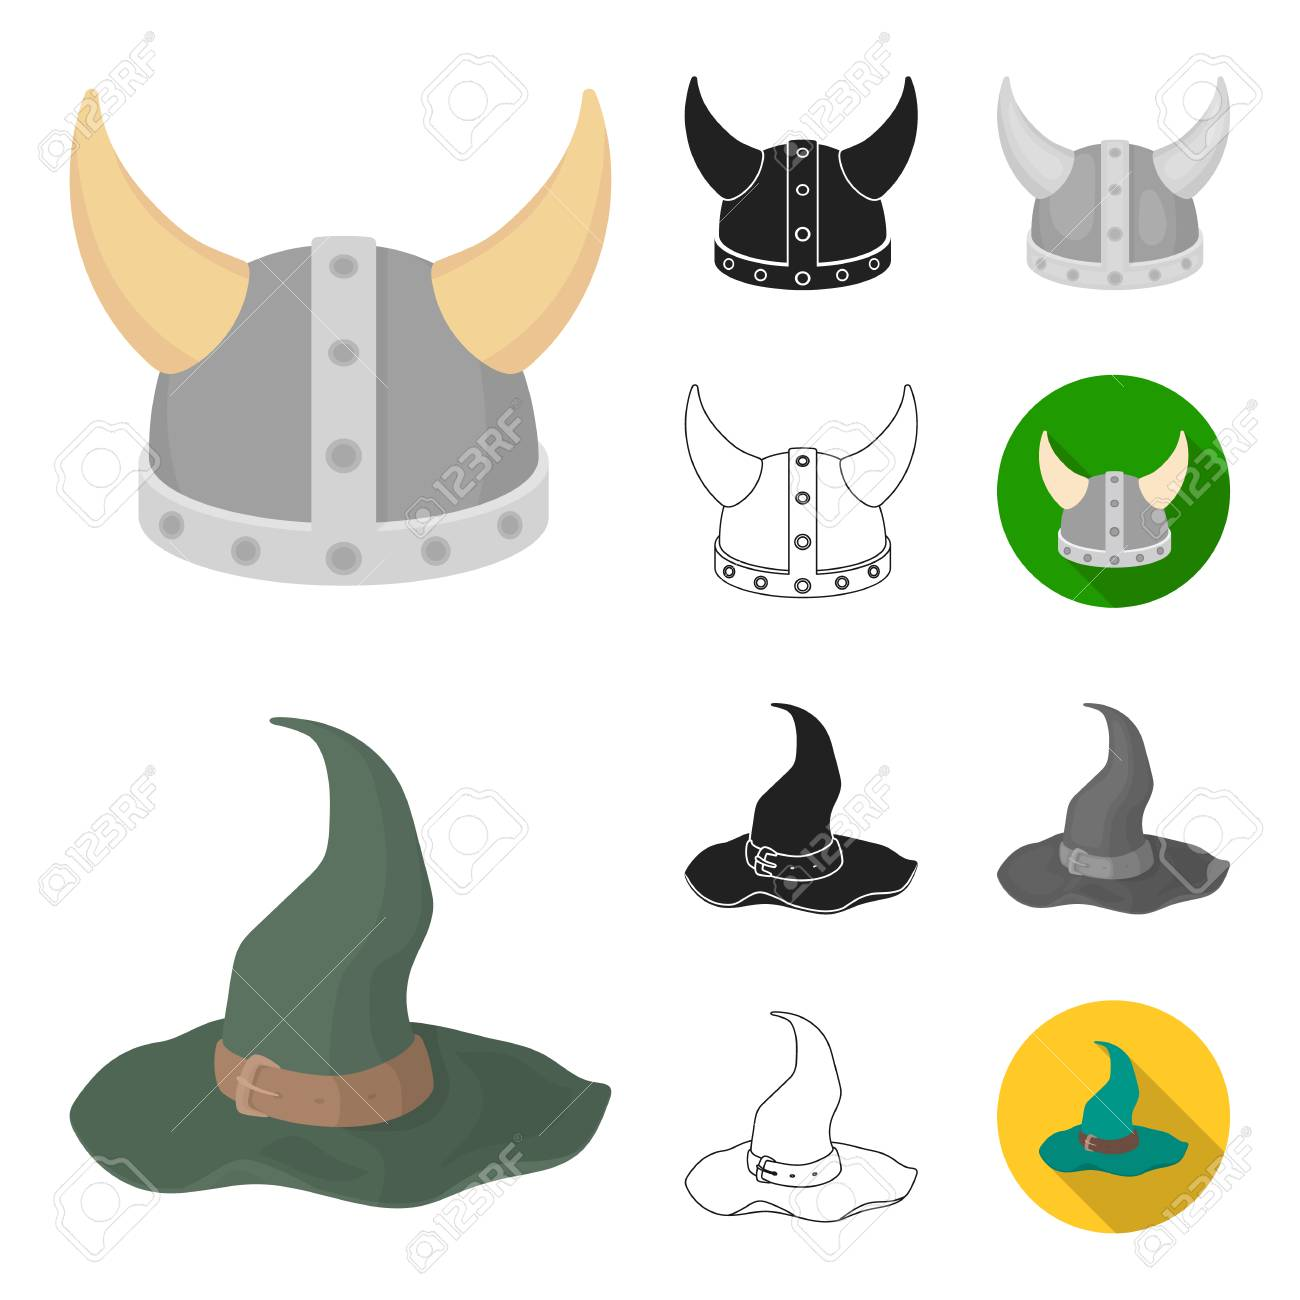 0a220c7cefc92 ... collection for design.Headdress bitmap symbol stock illustration. Different  kinds of hats cartoon